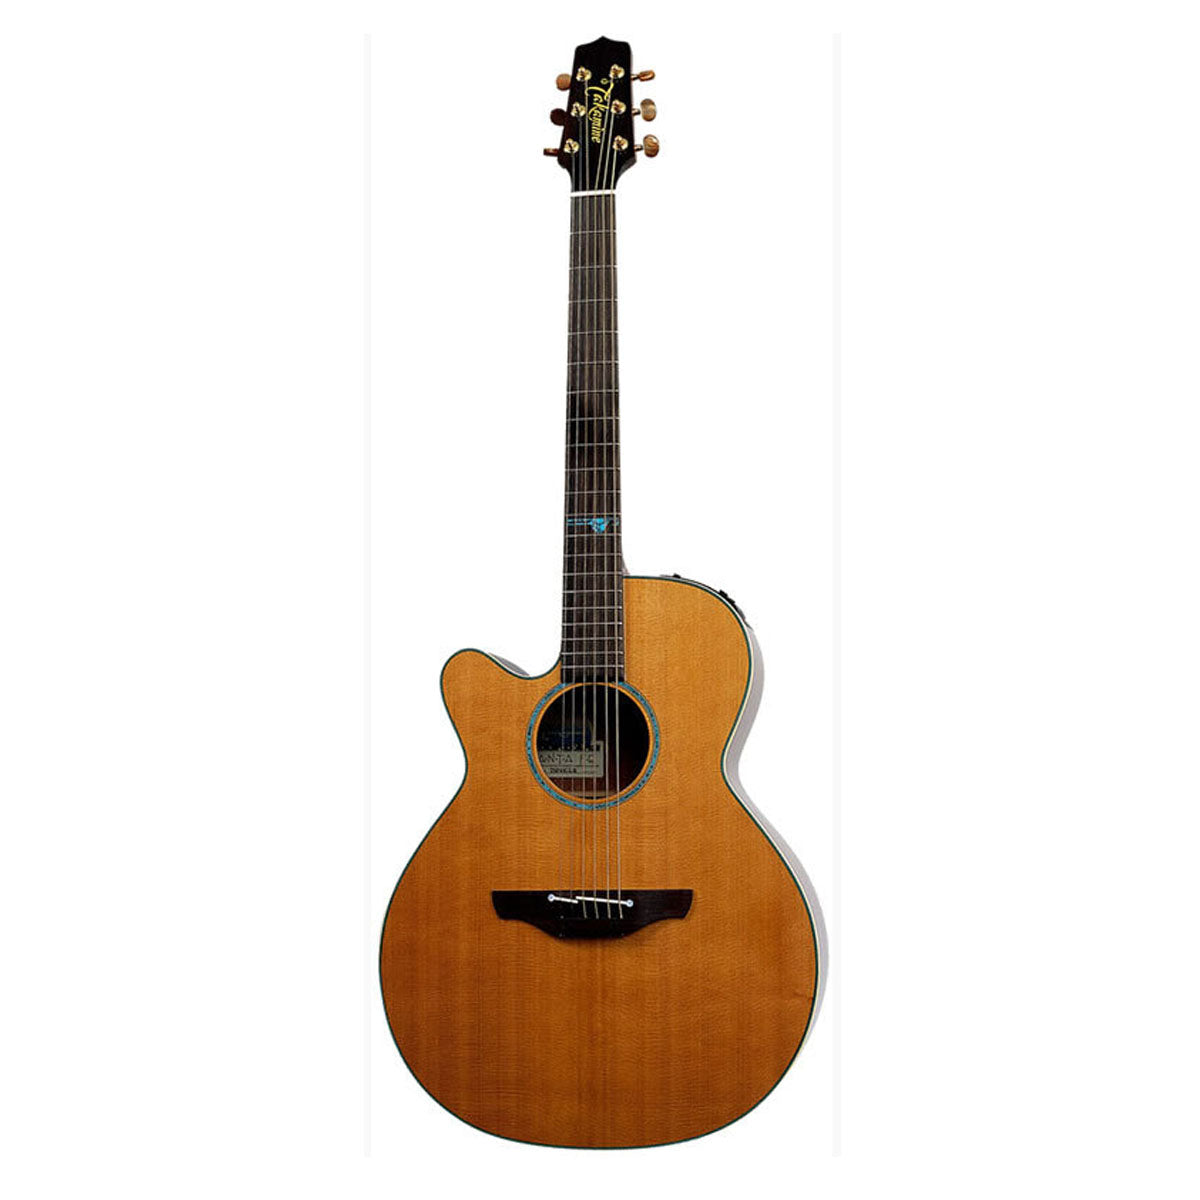 Takamine TSF40C Sante Fe Legacy Series Acoustic Guitar Left Handed NEX Natural w/ Pickup